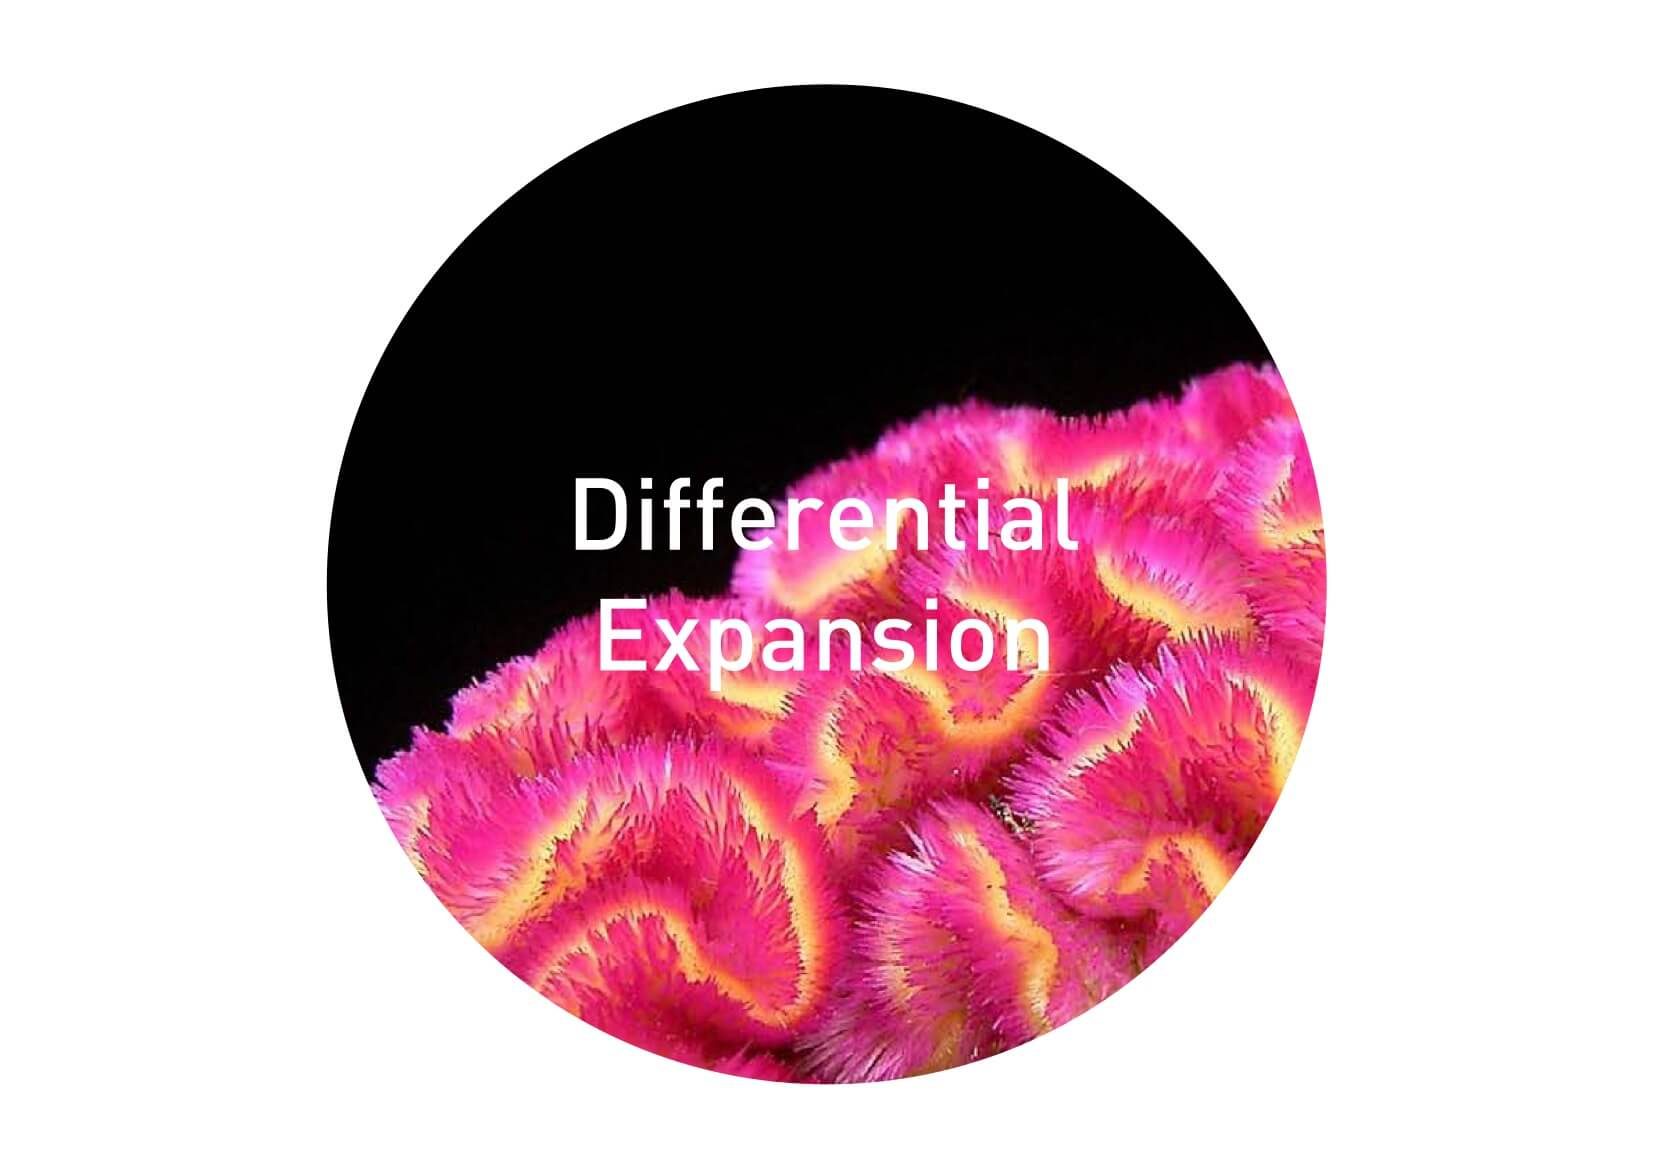 Differential Expansion